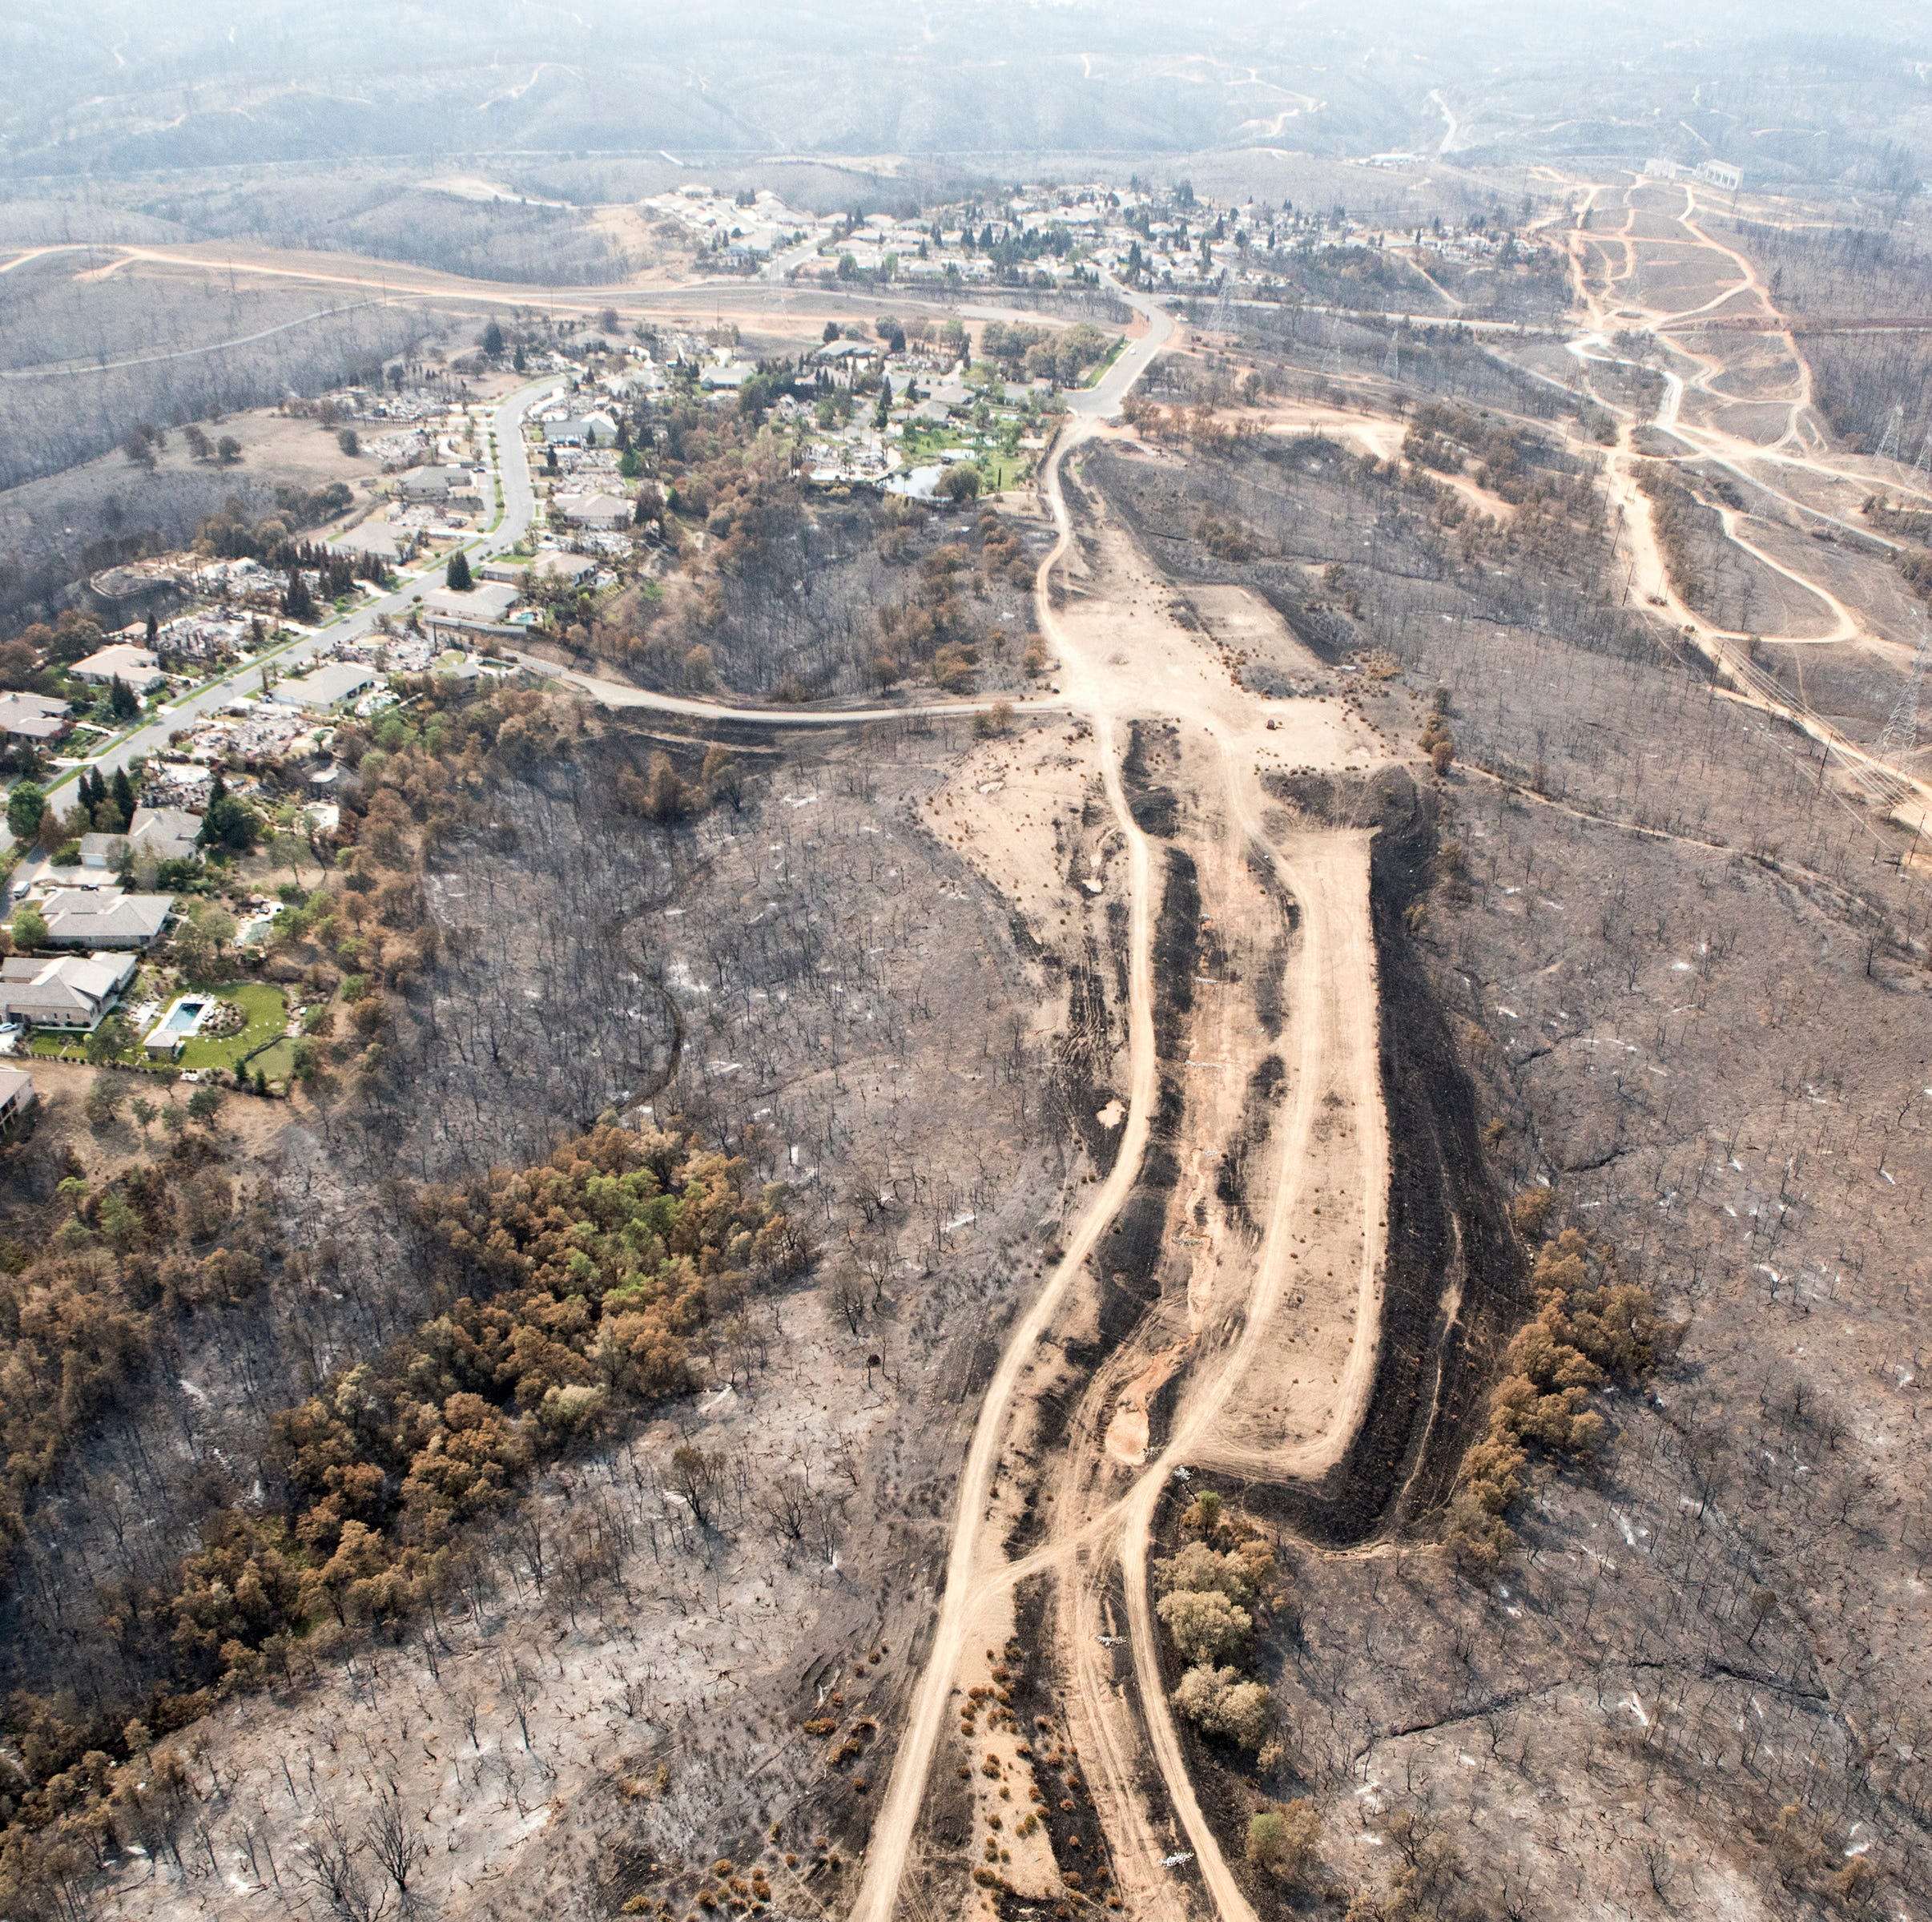 Lawsuit pushes city to do more in preventing another Carr Fire